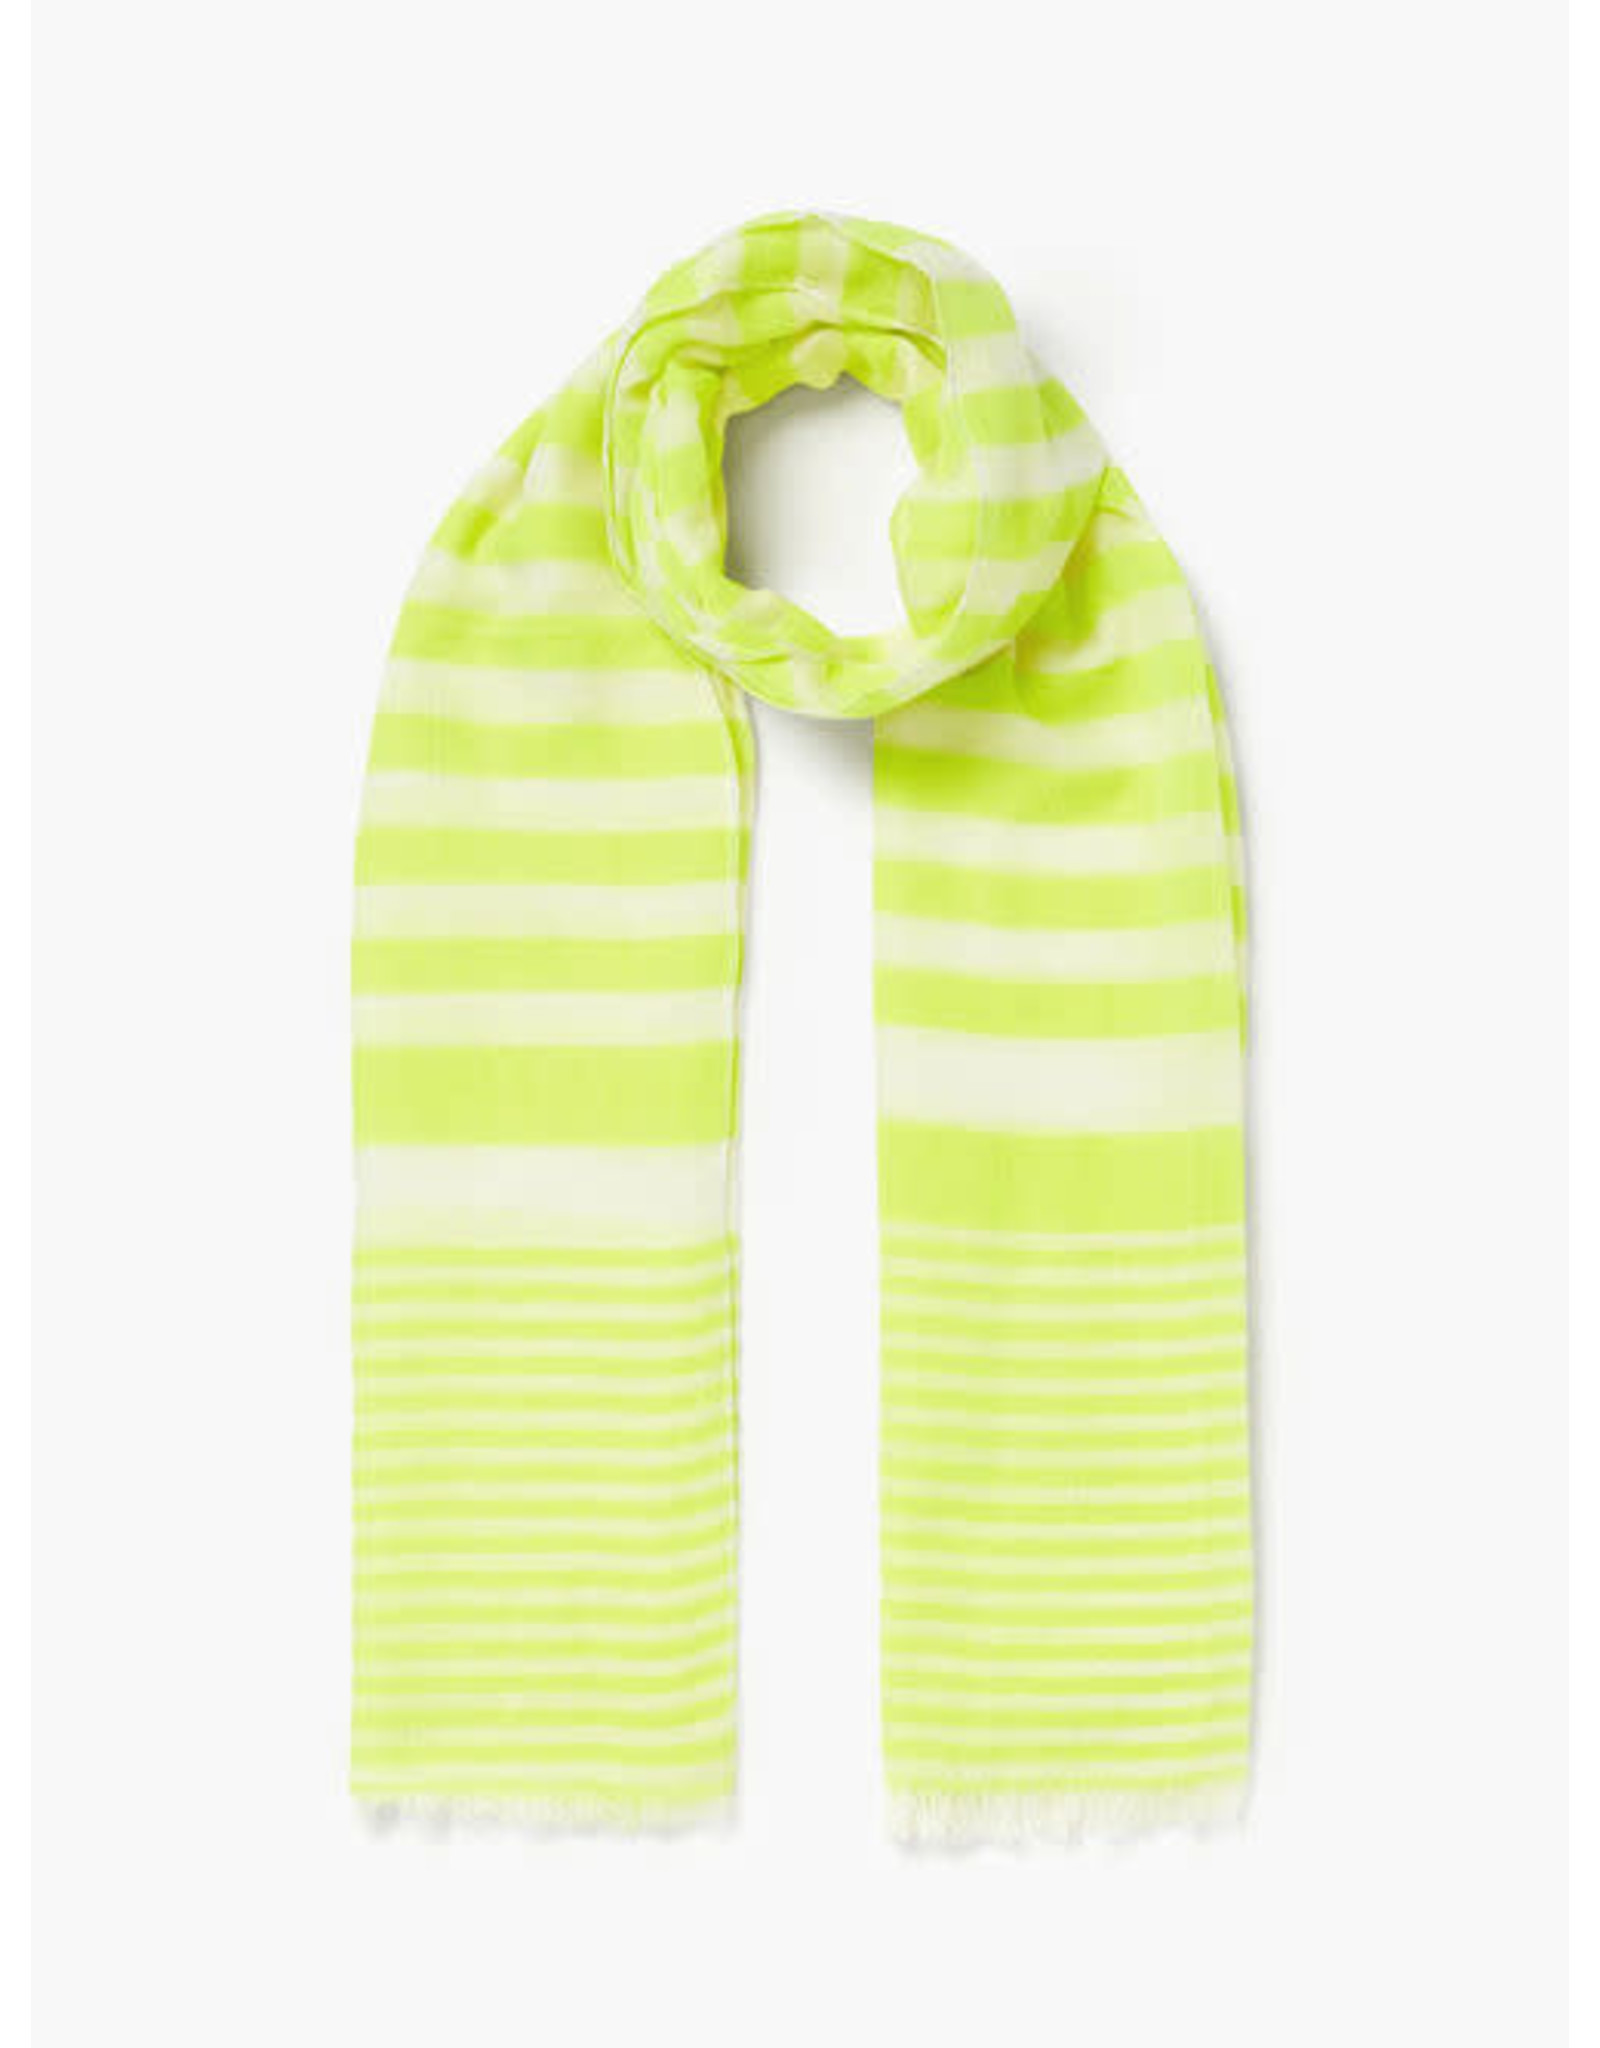 Unmade Mina Yellow Scarf